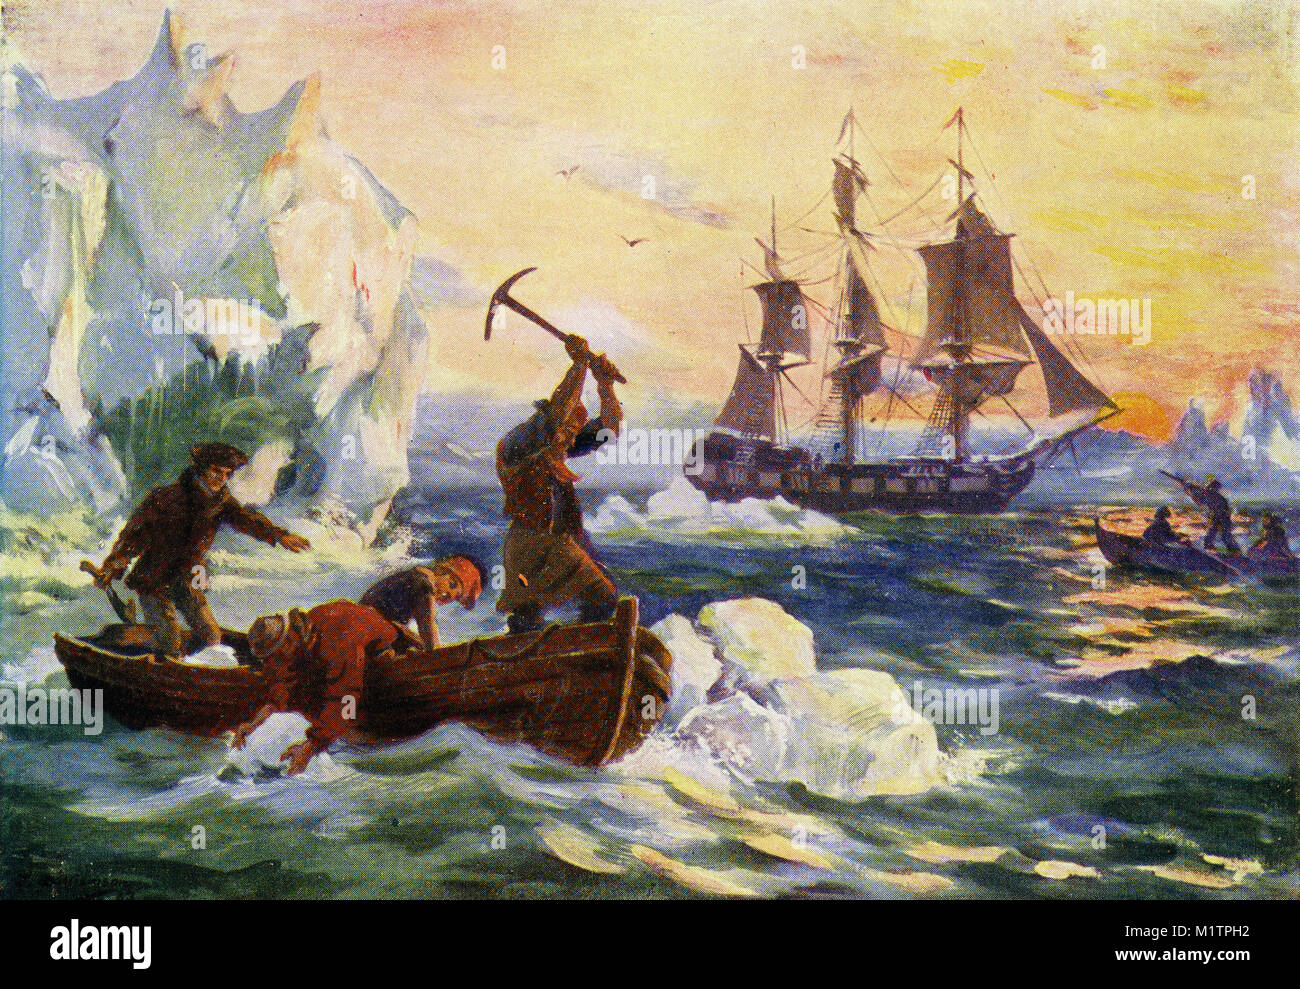 Halftone illustration of arctic explorers gathering icebergs to melt down for fresh water, while others shoot seabirds - Stock Image